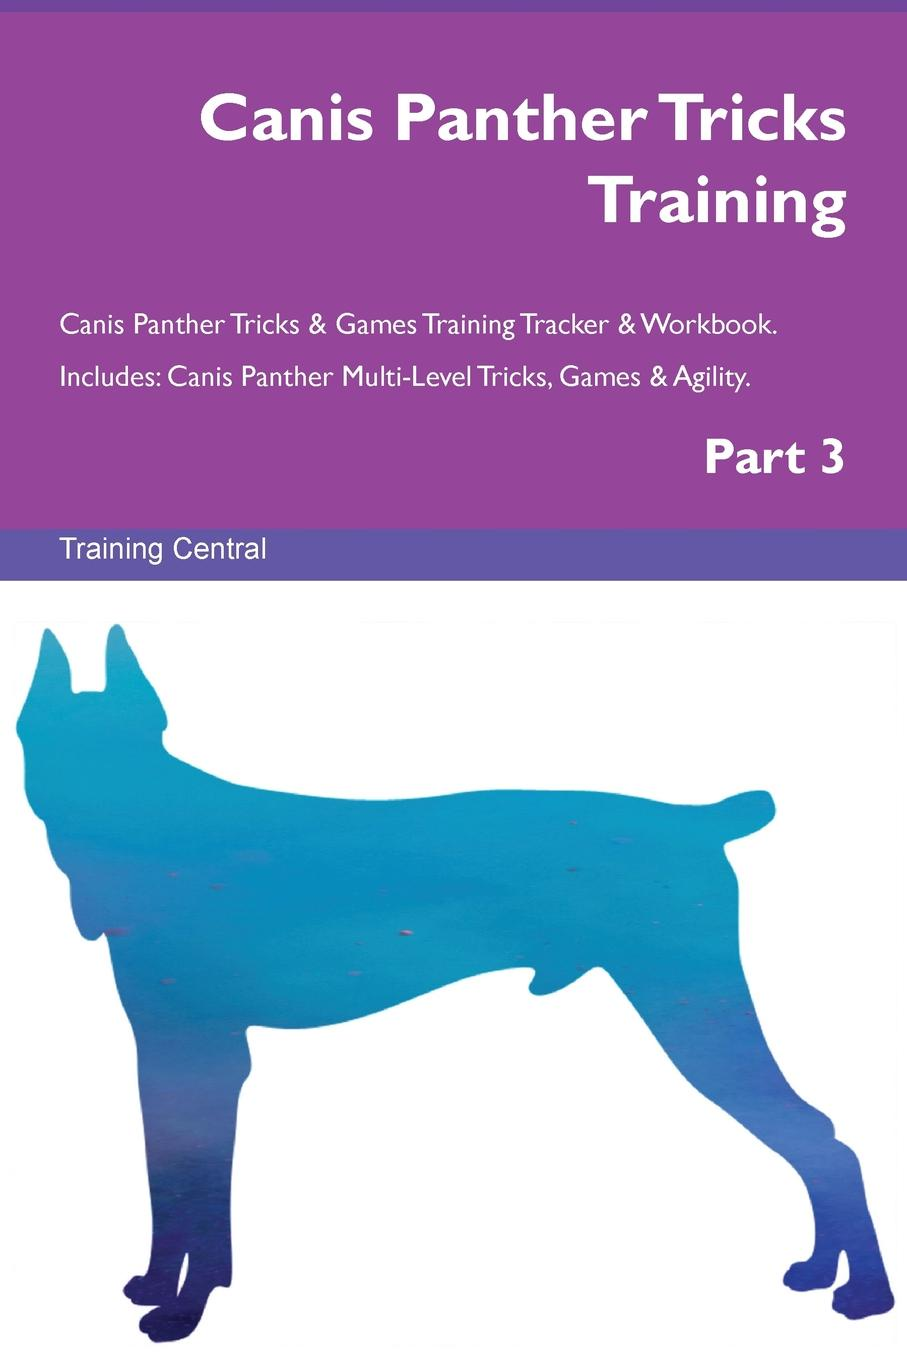 цена Training Central Canis Panther Tricks Training Canis Panther Tricks . Games Training Tracker . Workbook. Includes. Canis Panther Multi-Level Tricks, Games . Agility. Part 3 онлайн в 2017 году